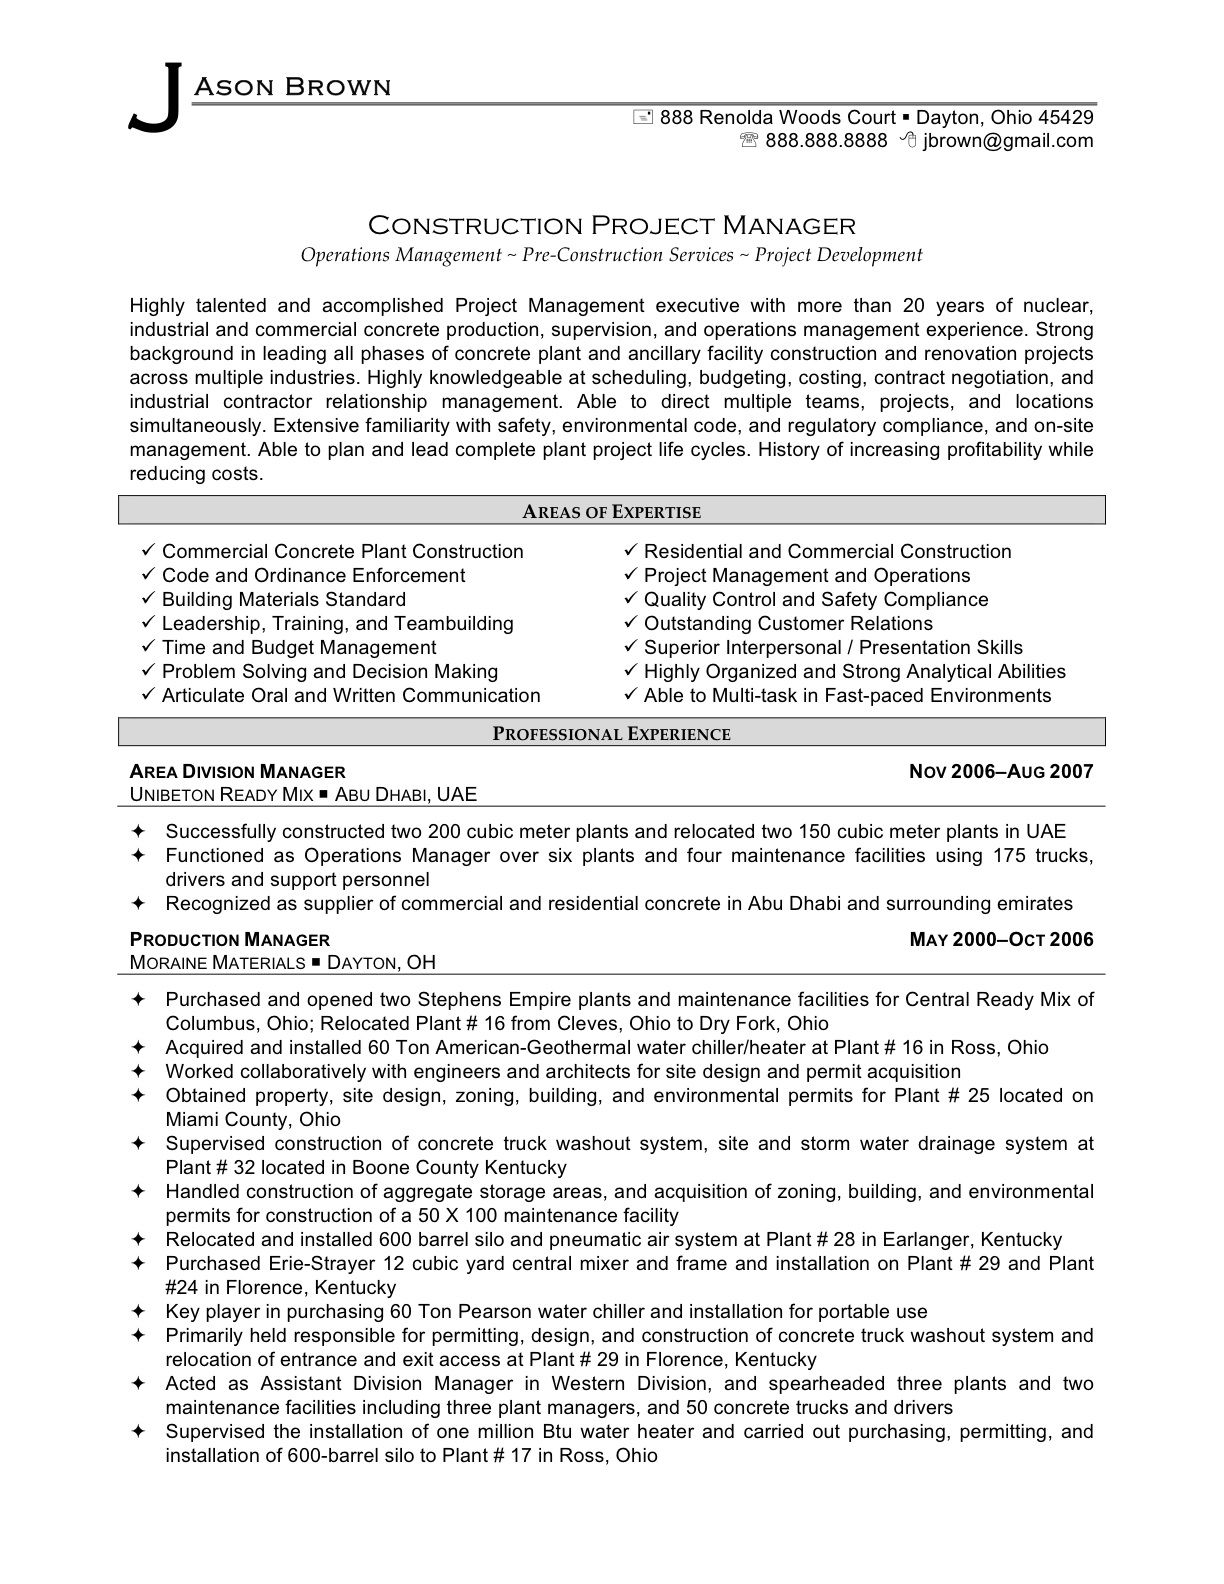 resume templates project manager  residential or commercial  also resume templates project manager  residential or commercial superintendentprojectmanager